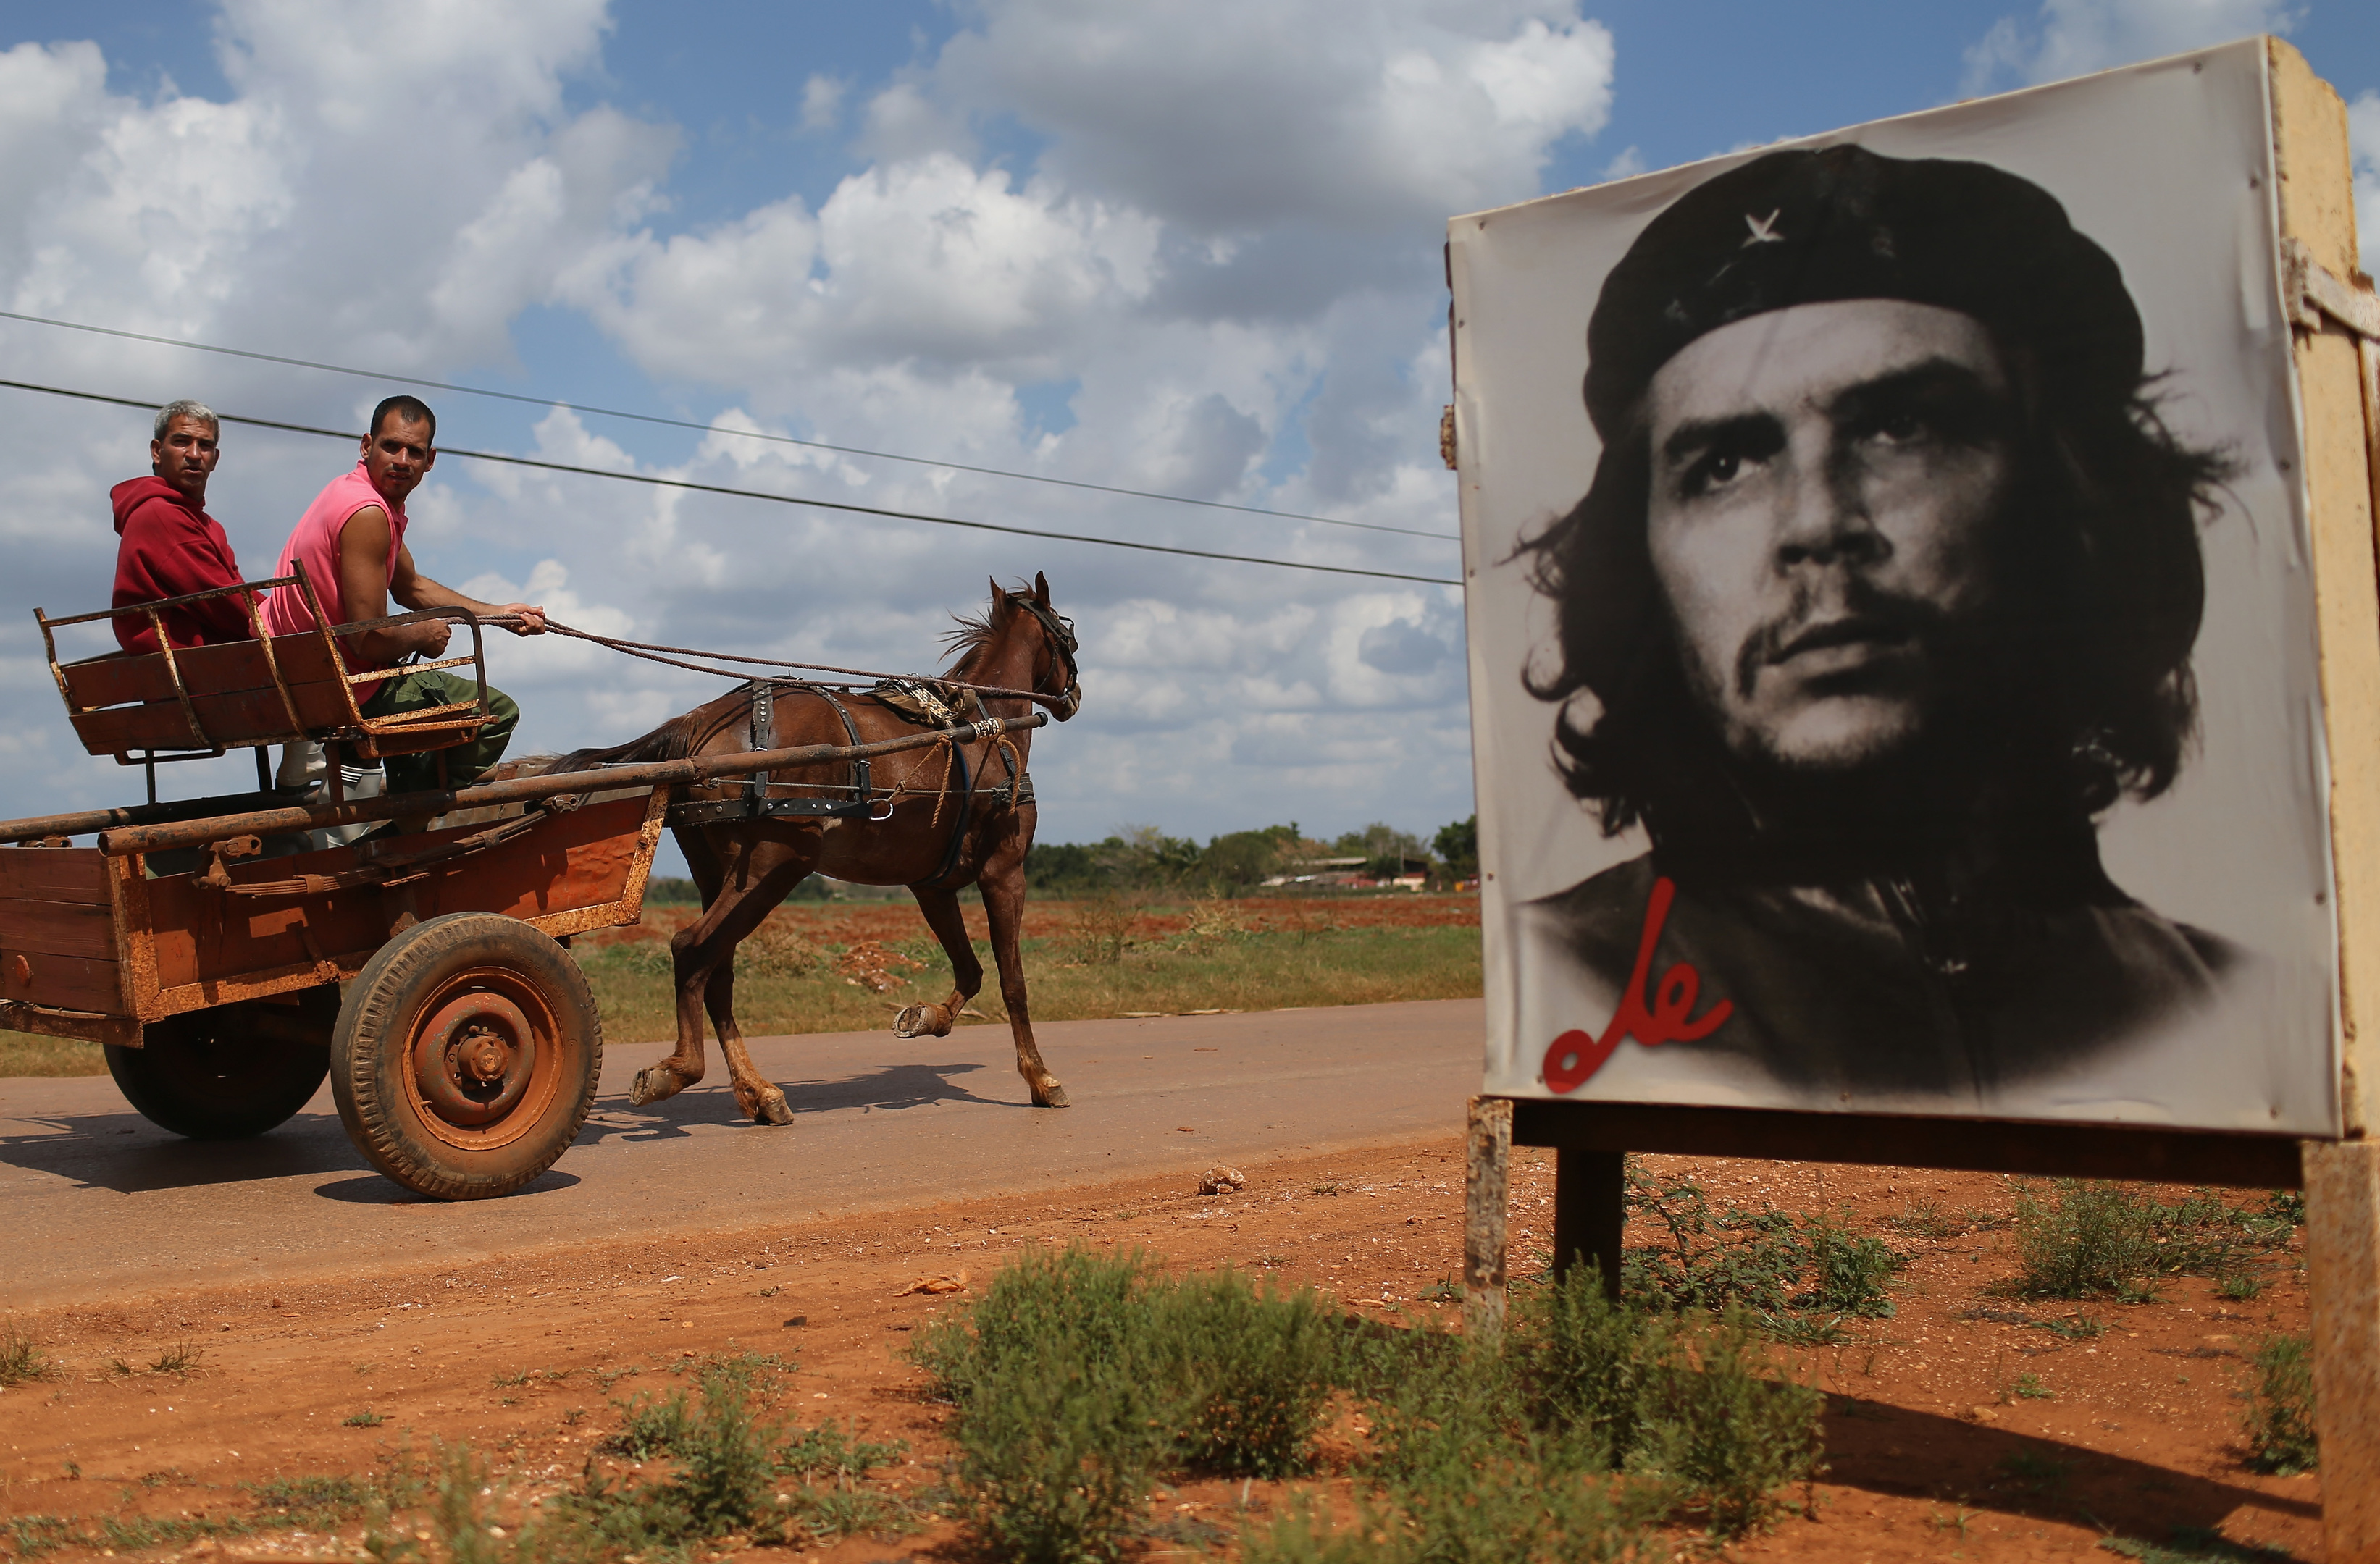 A poster of Revolutionary hero Che Guevara (Joe Raedle/Getty Images)